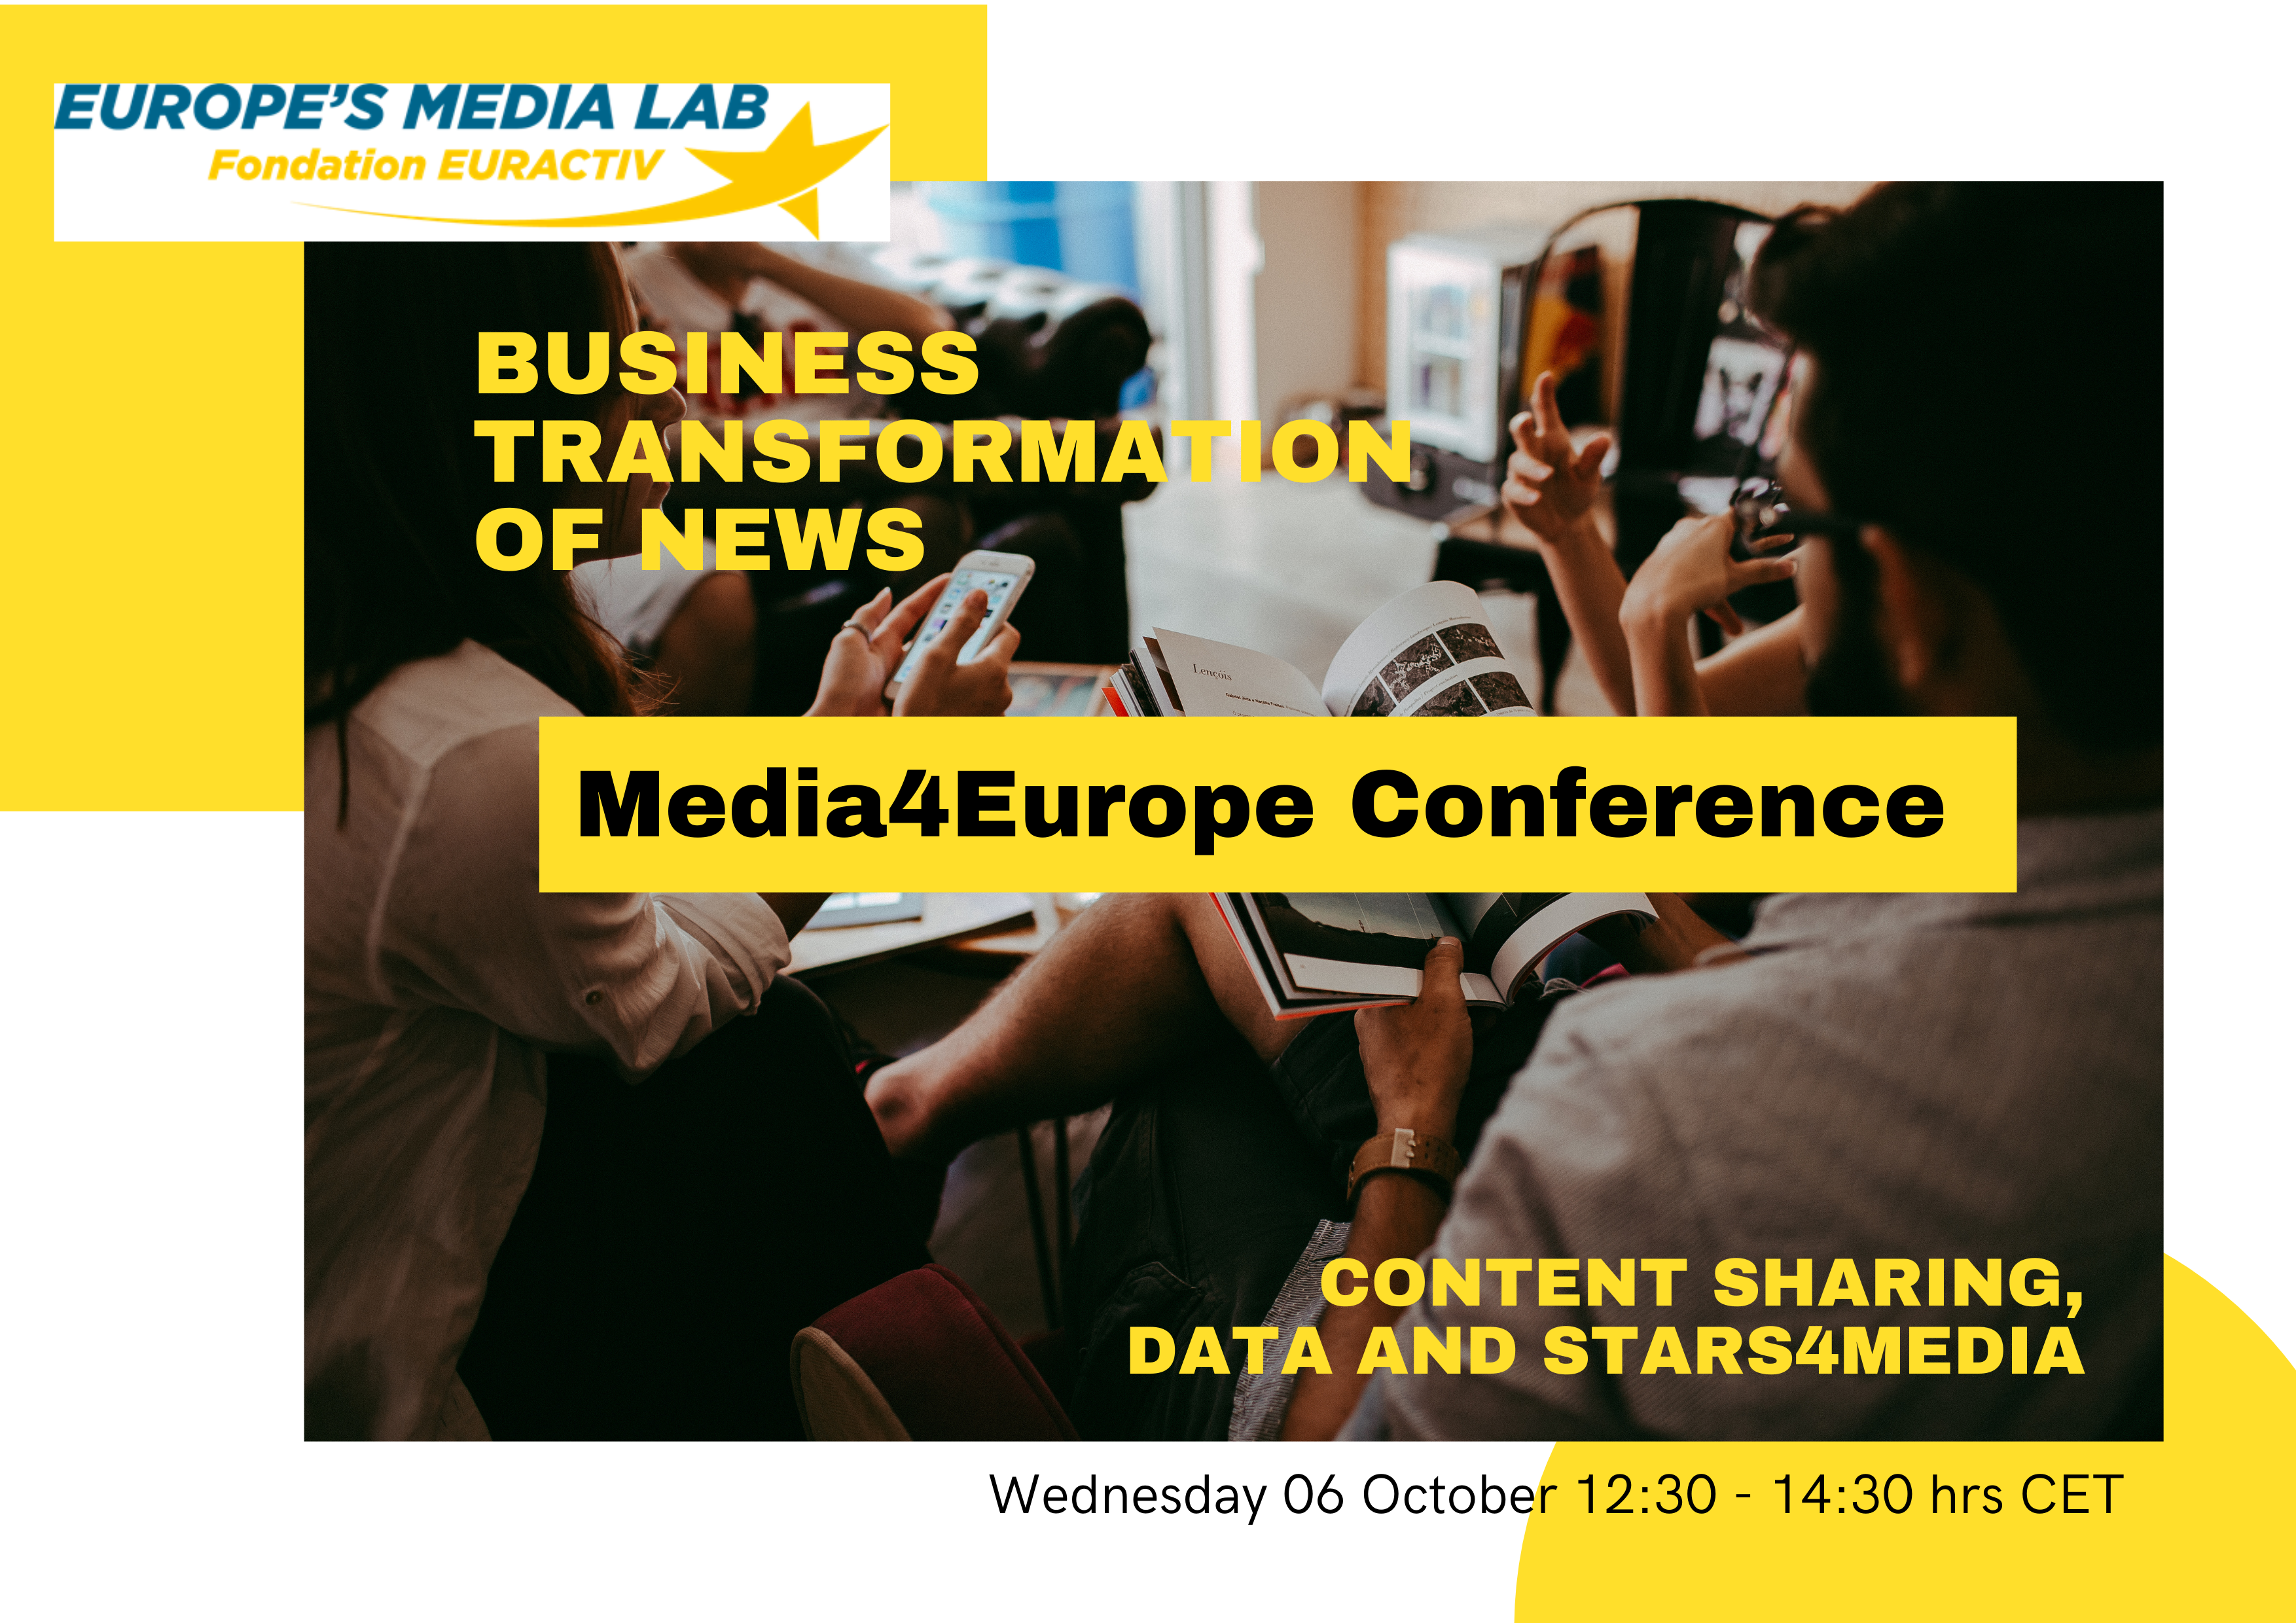 MEDIA4EUROPE CONFERENCE - Business Transformation of NEWS media: Content Sharing, Data and Stars4Media